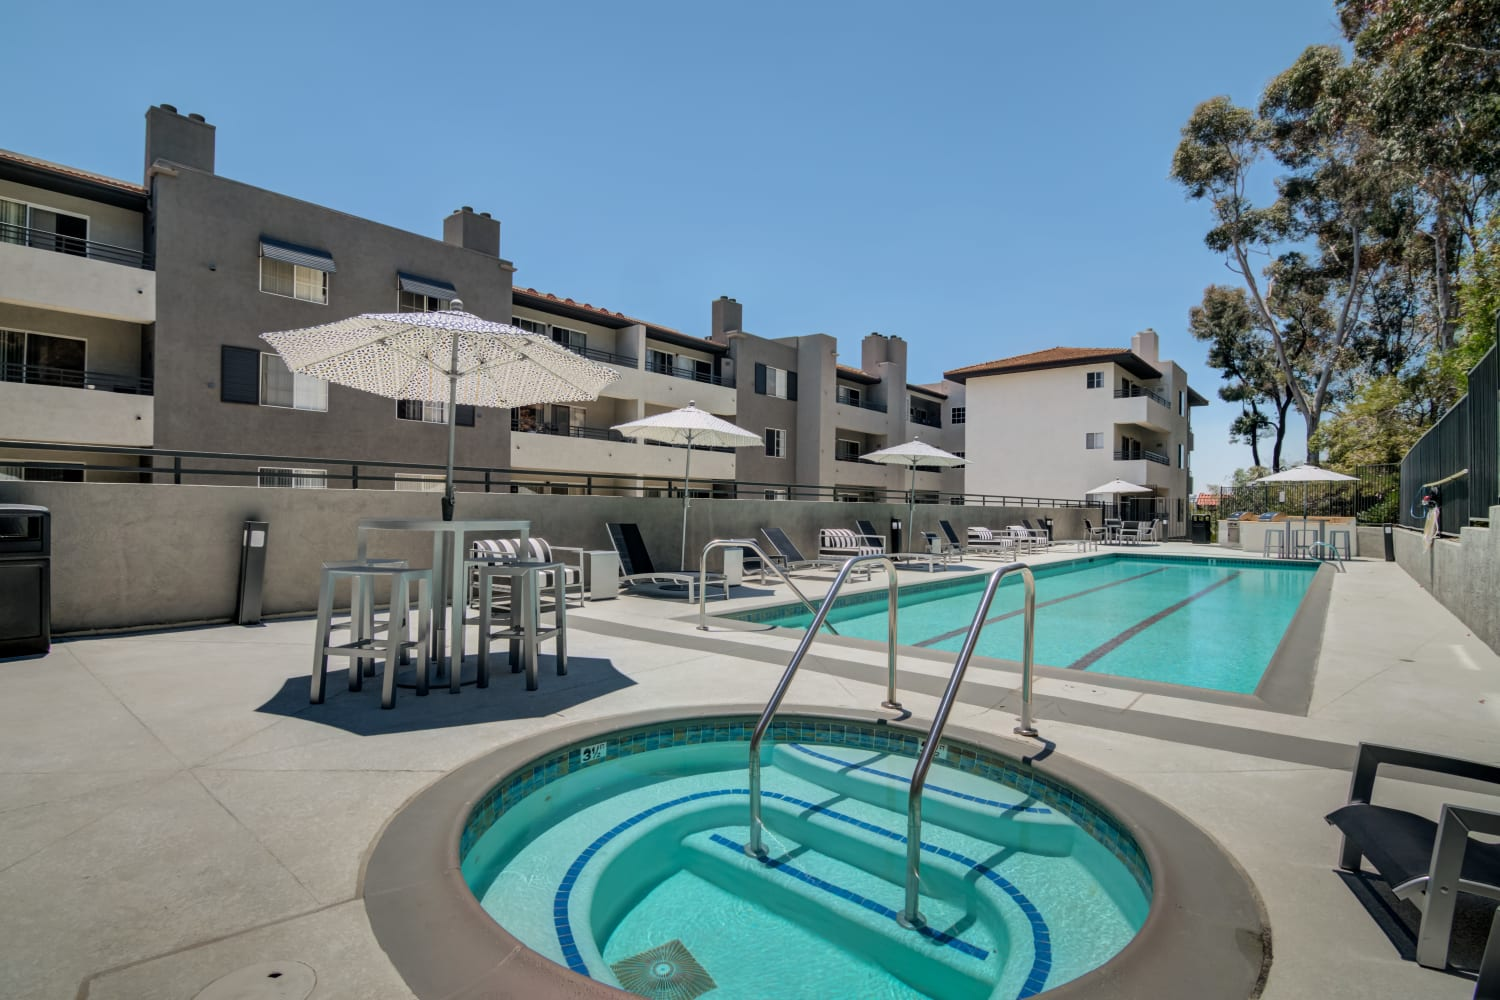 Pool and tub at Fashion Terrace in San Diego, CA